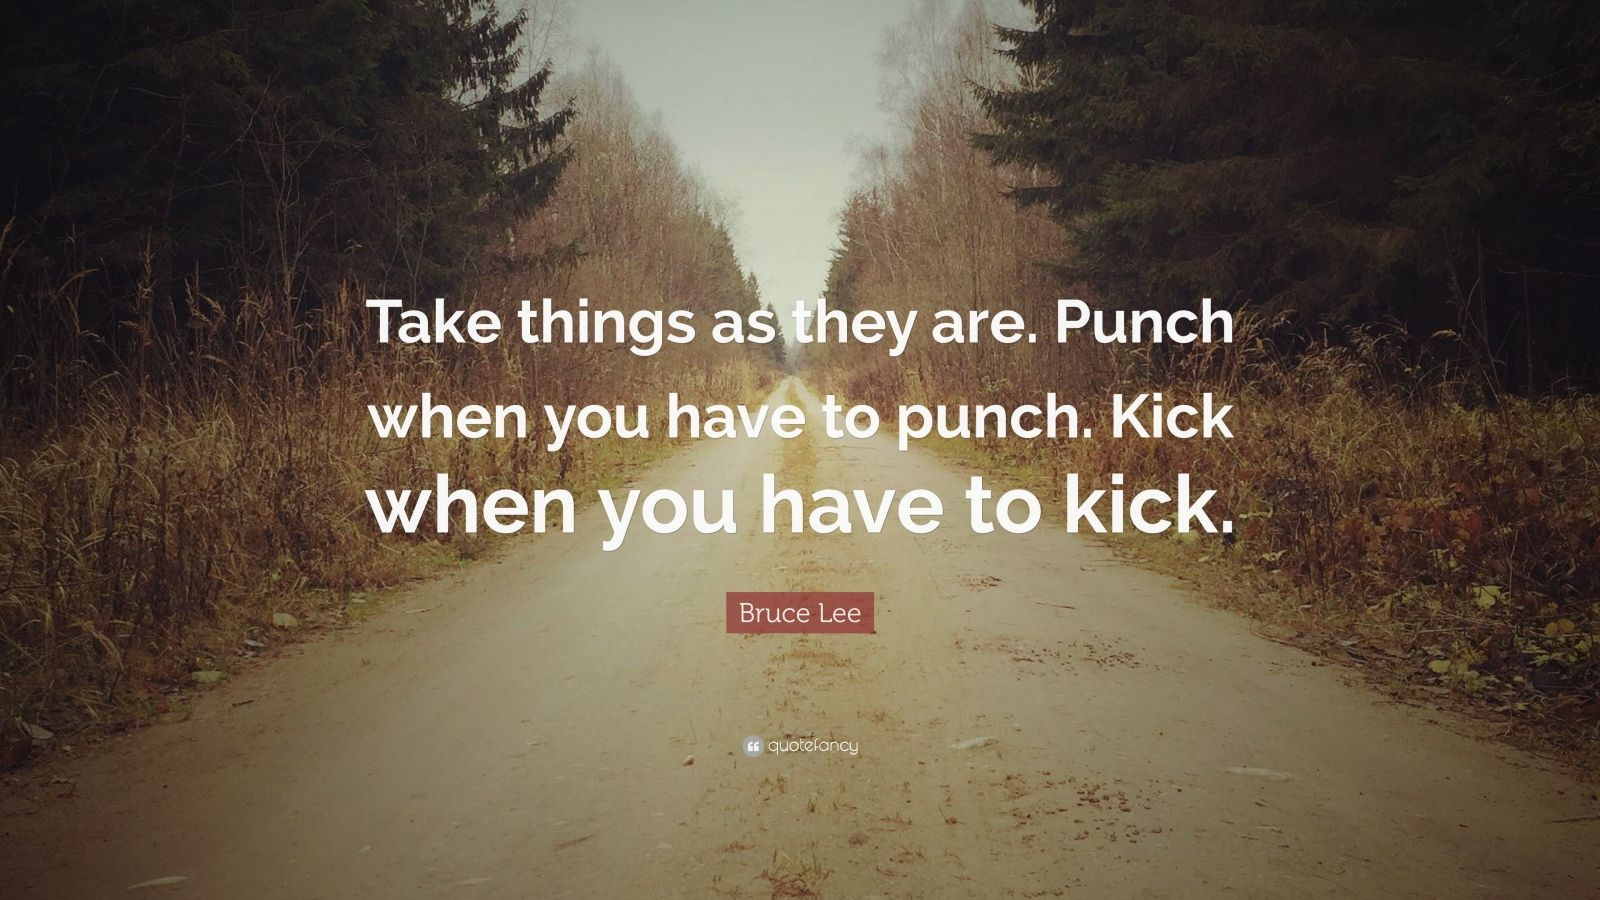 """Bruce Lee Quote: """"Take things as they are. Punch when you have to punch. Kick when you have to kick."""""""